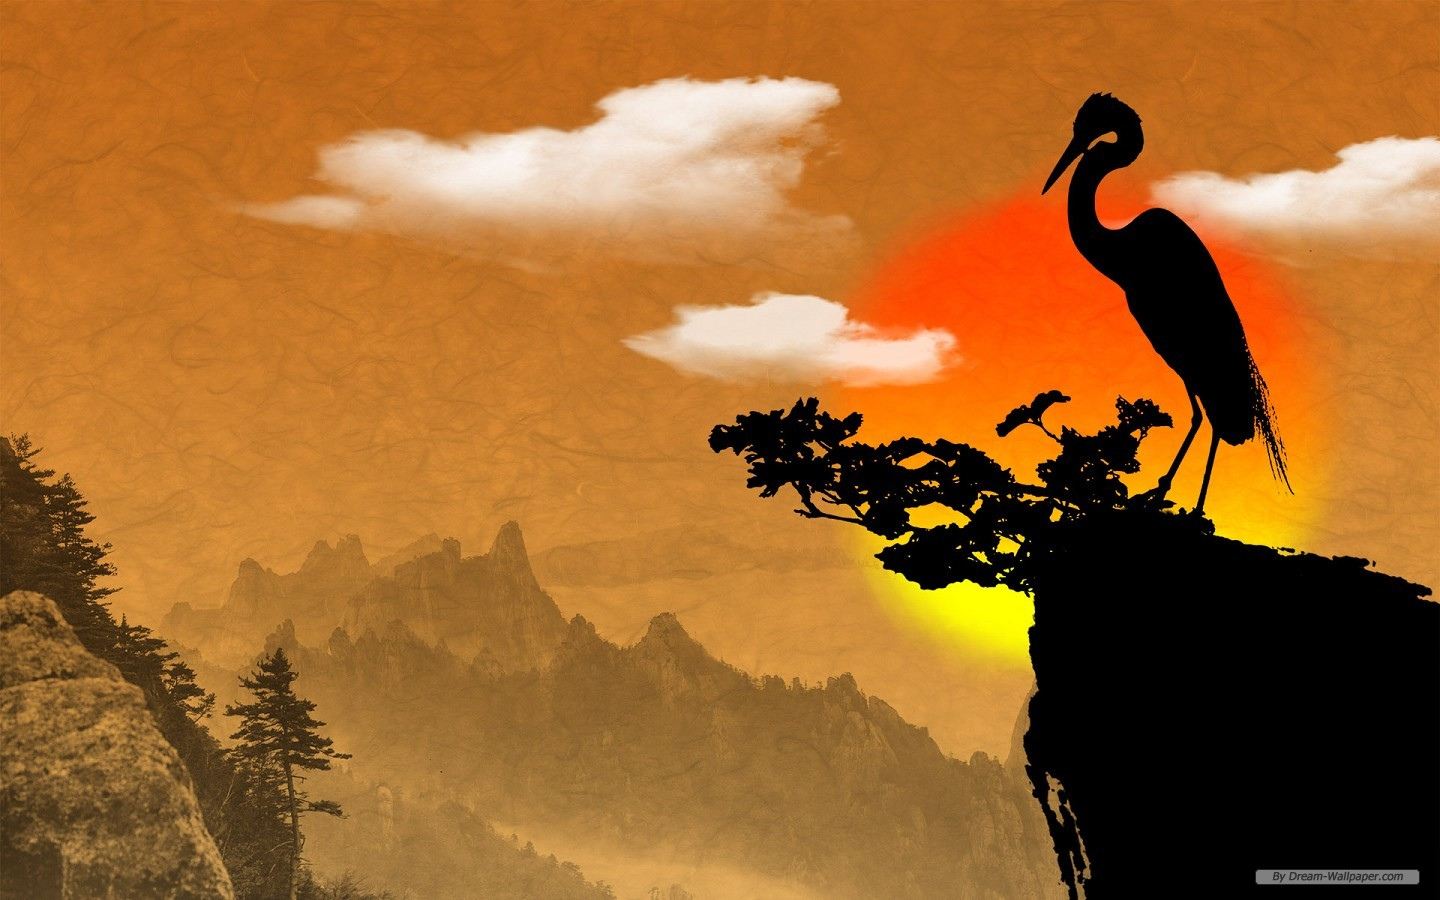 Art Wallpaper Chinese Ink Painting 1440x900 1440x900